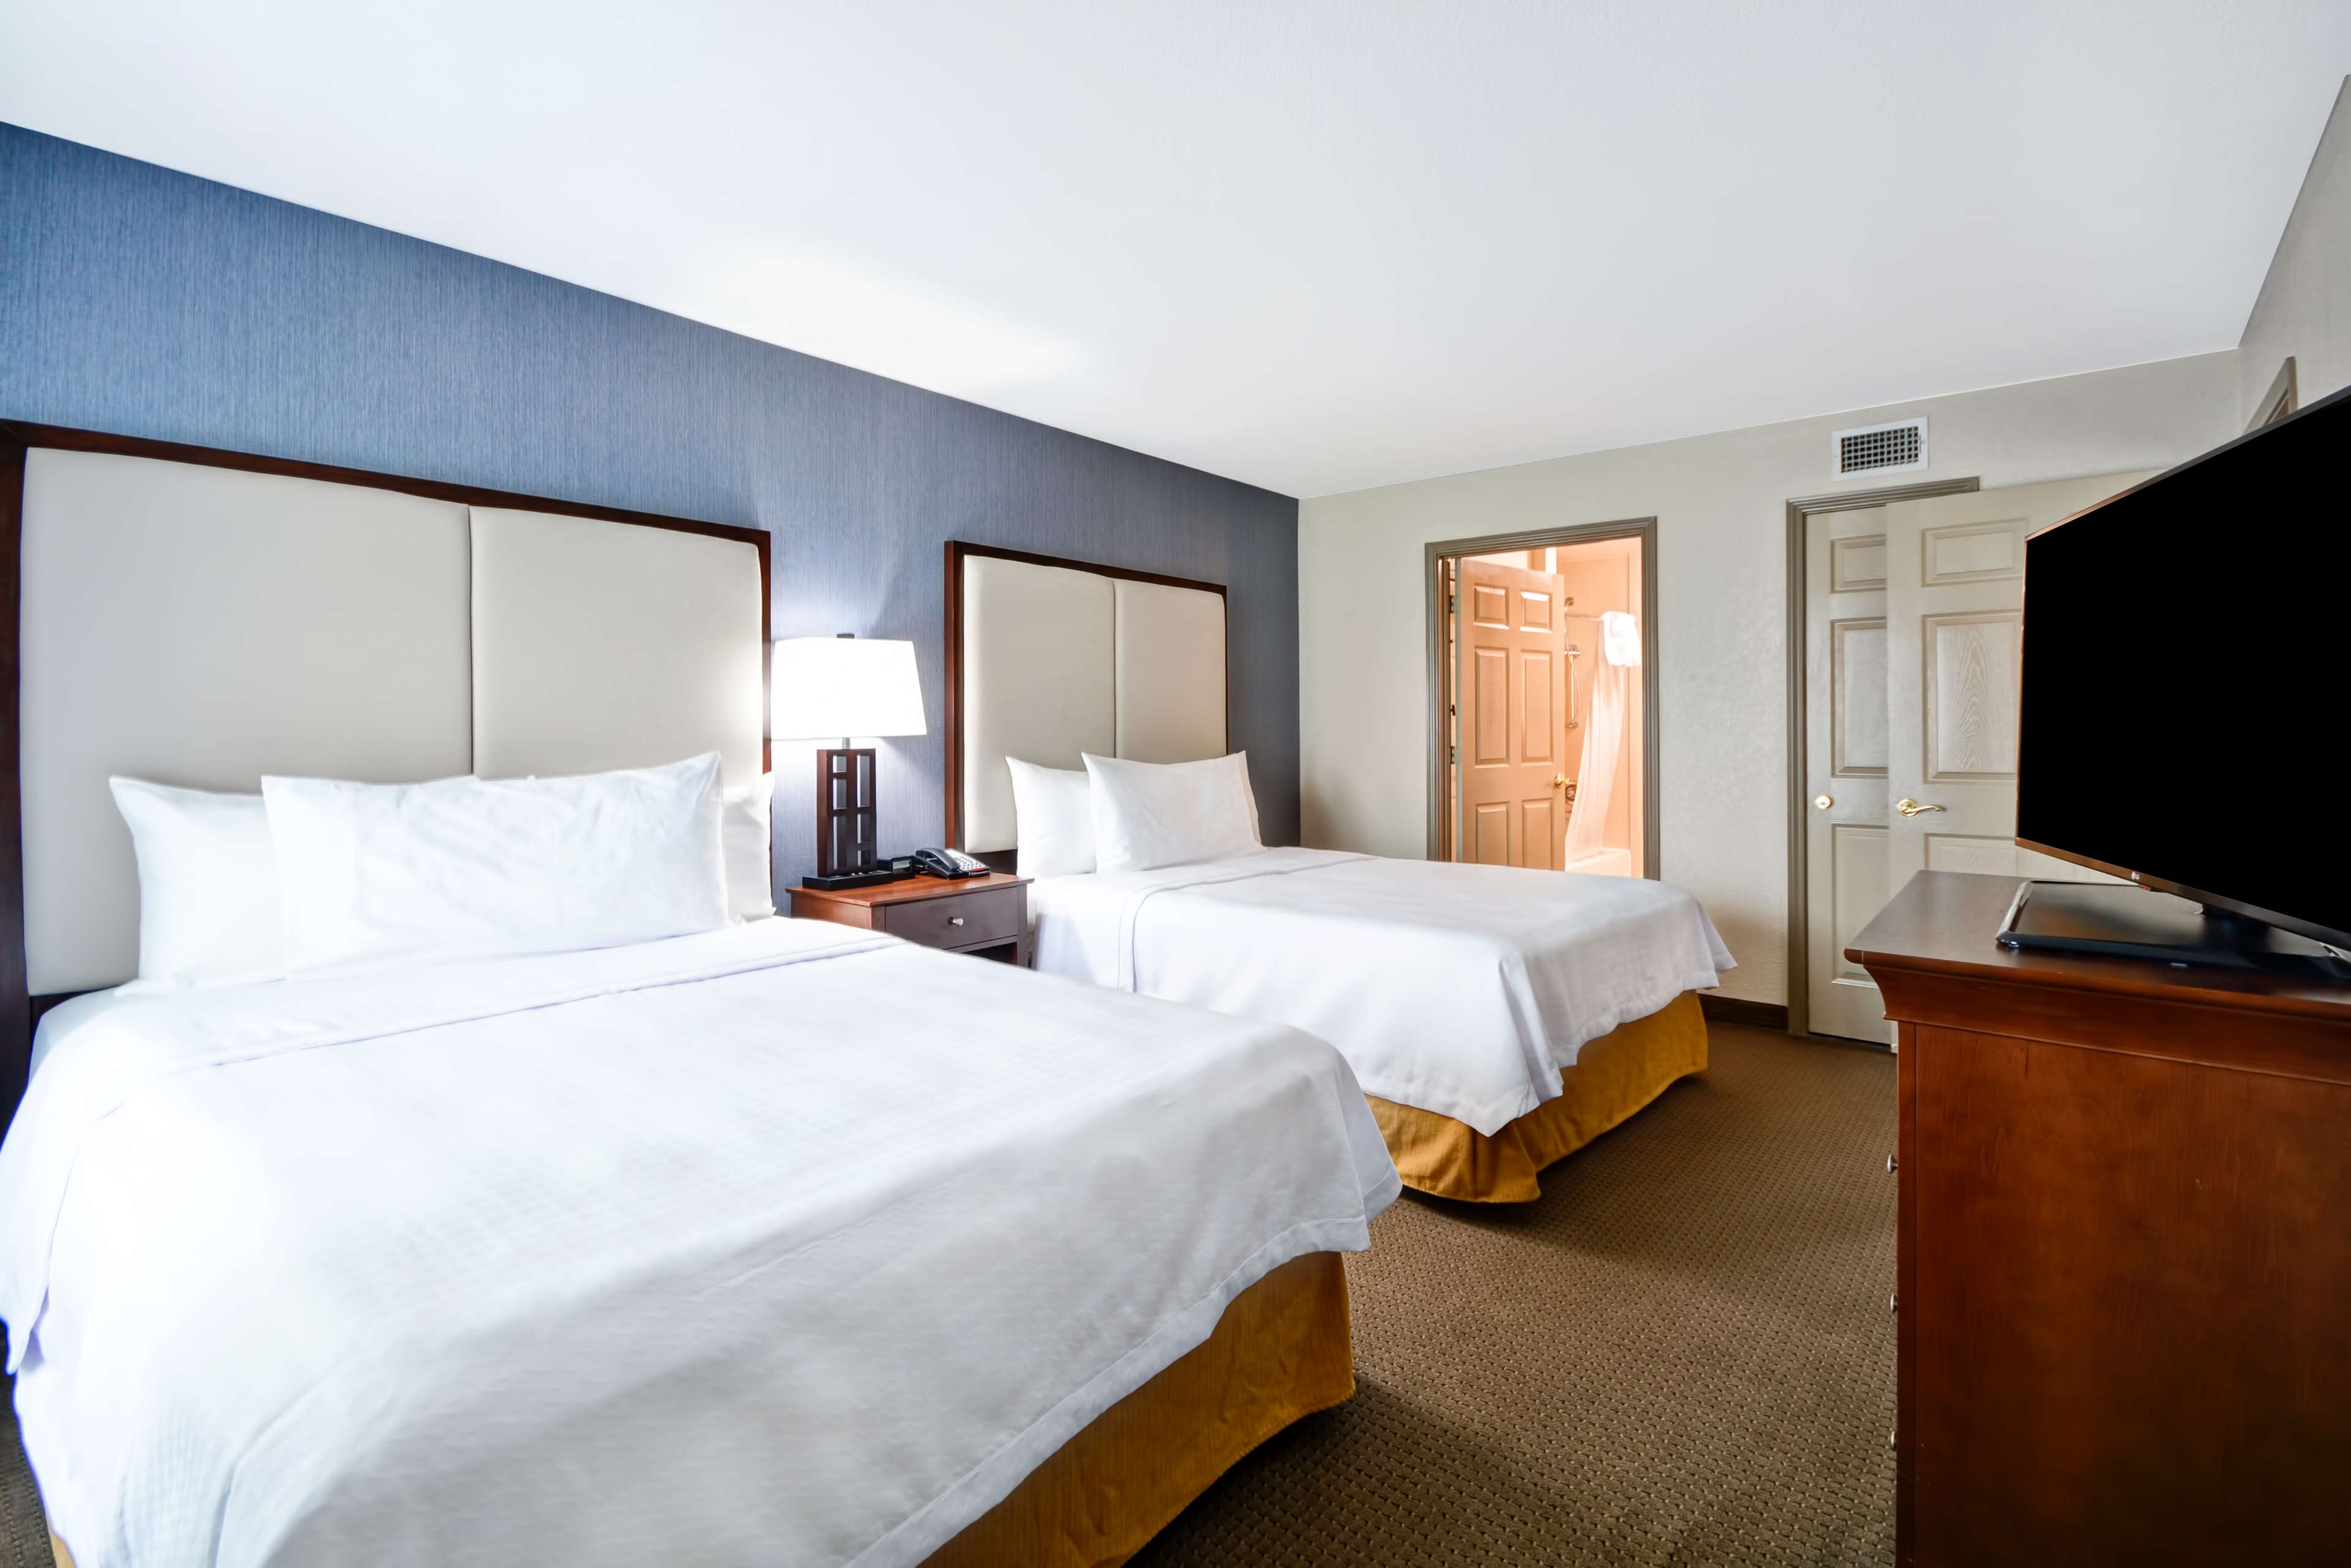 Homewood Suites by Hilton Dallas-Lewisville image 20